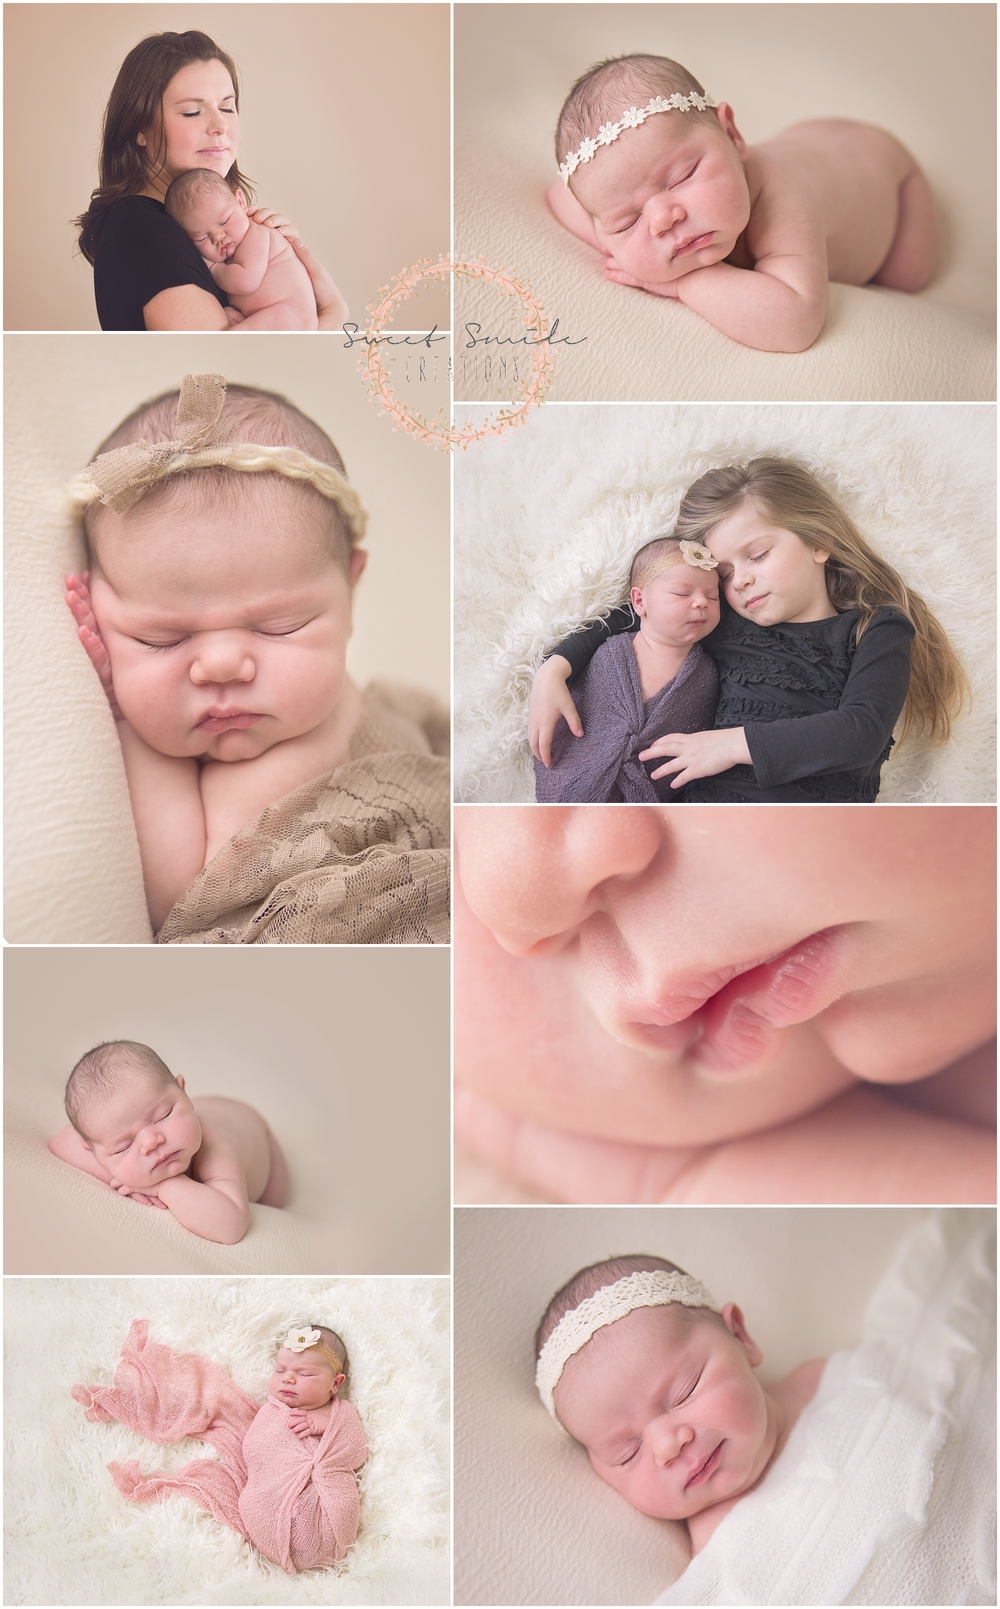 Newborn Baby girl session. Mommy pose, sibling pose. Sister with newborn. newborn smile. www.sweetsmilecreations.com